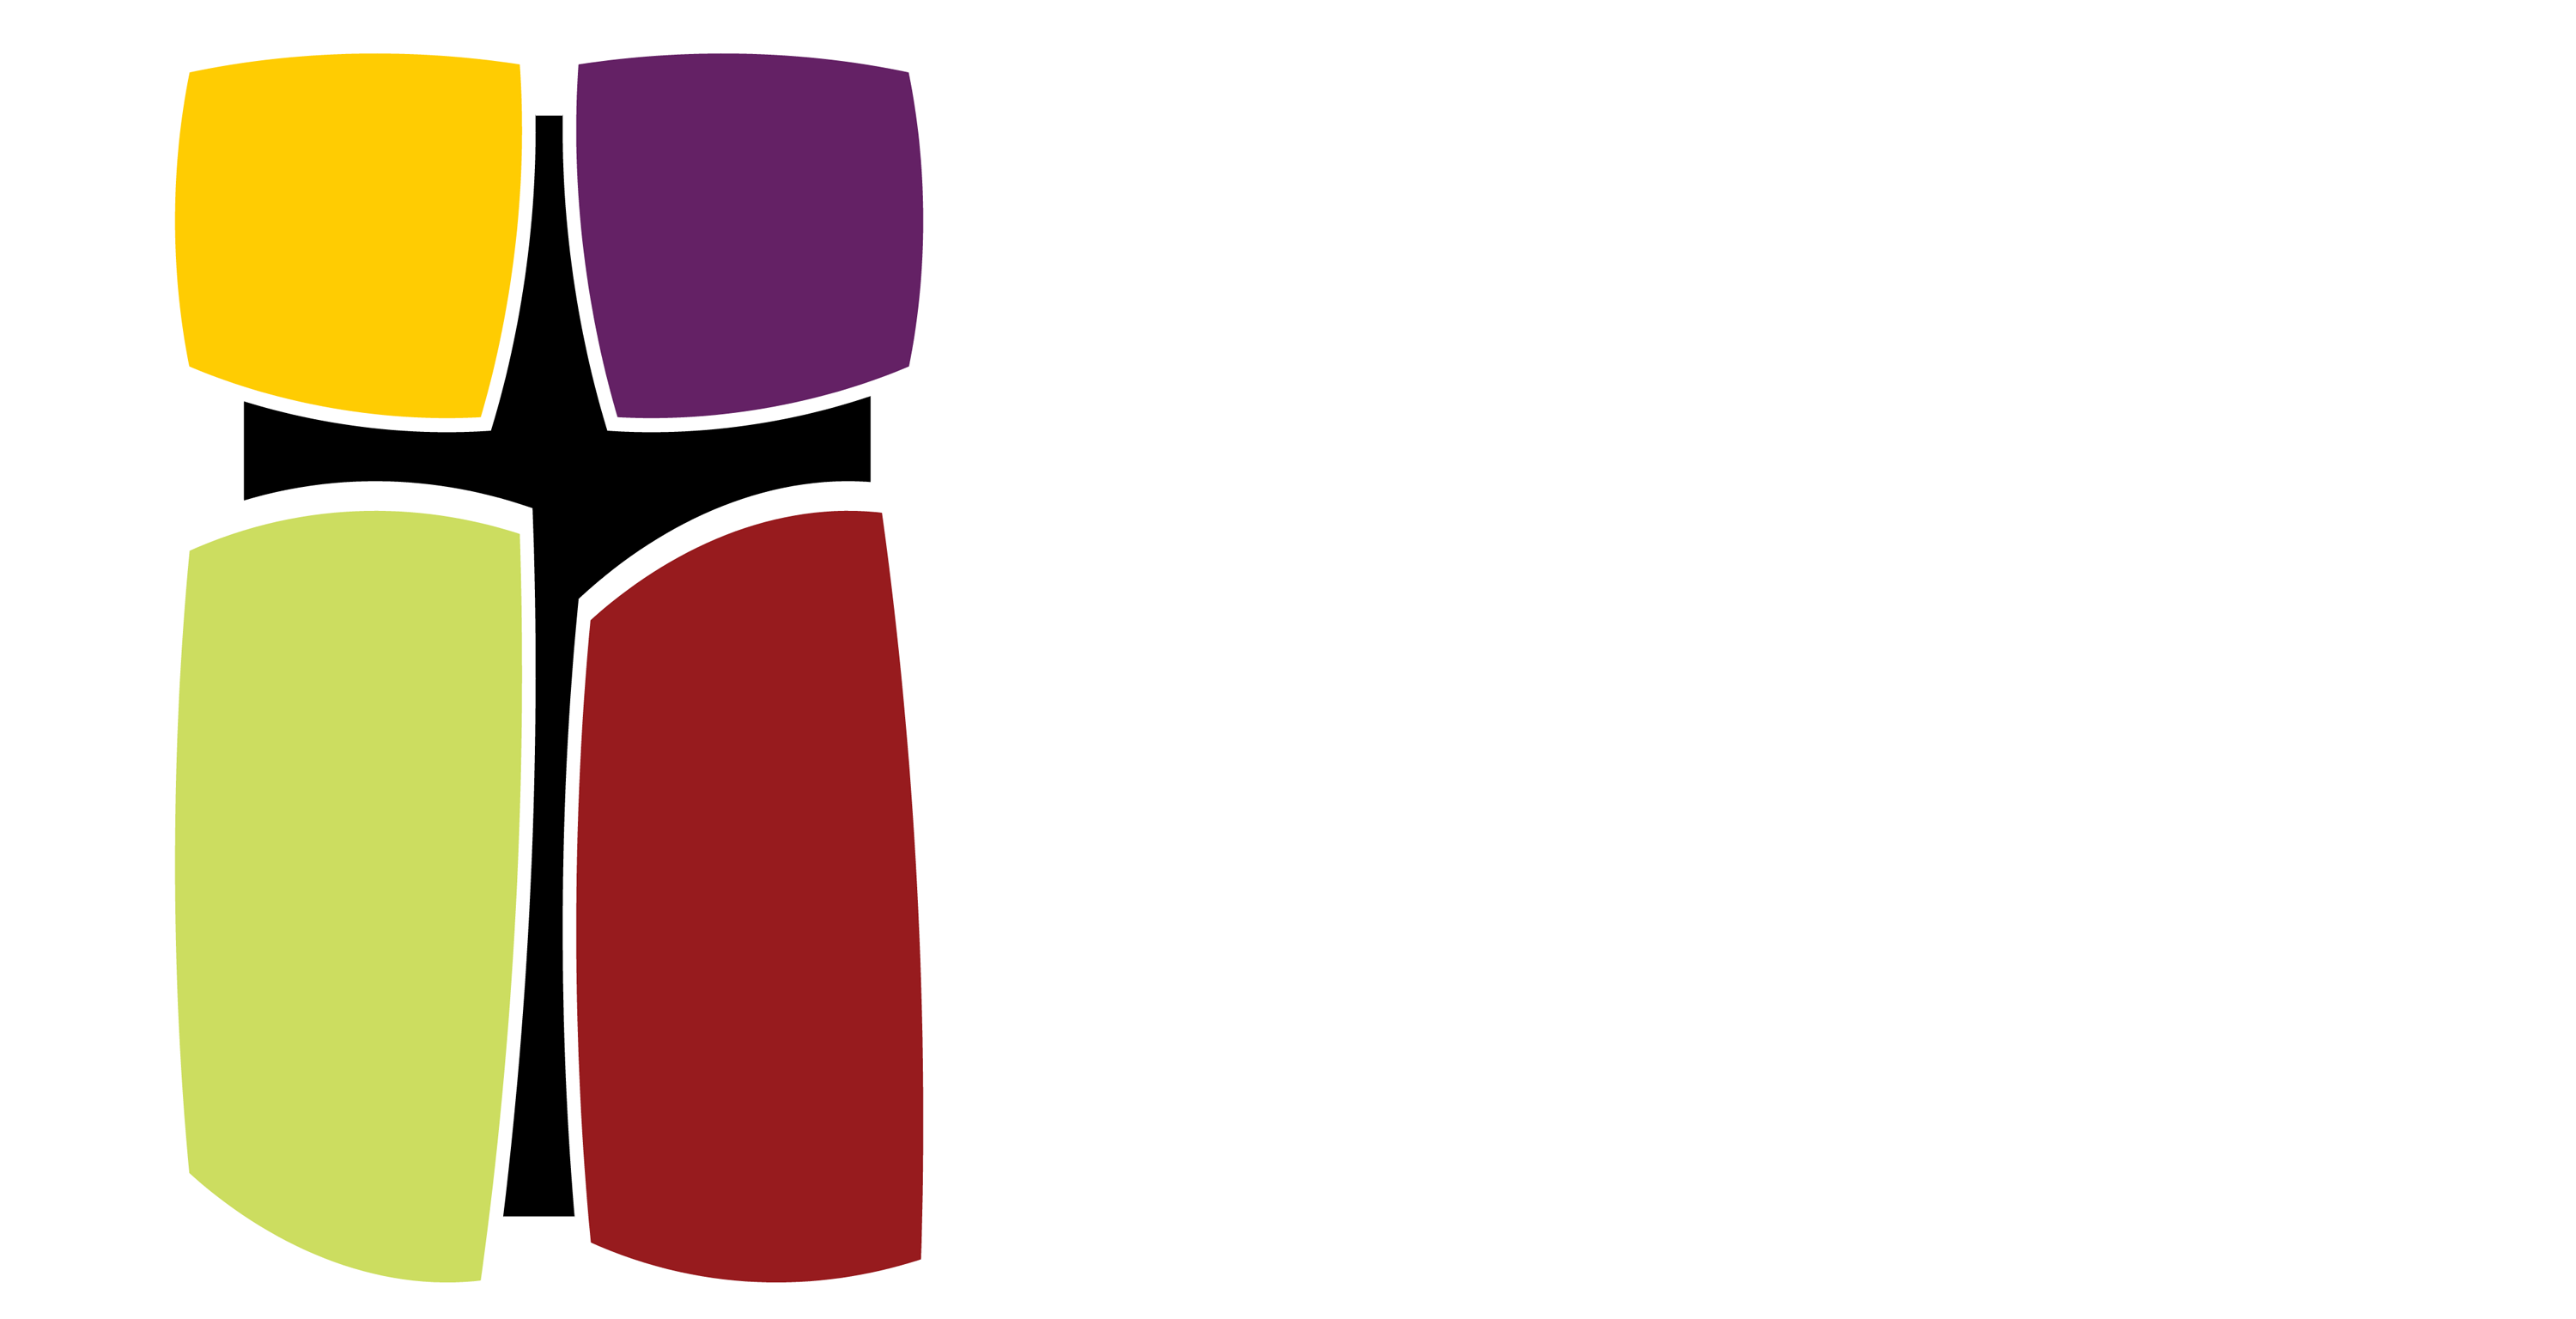 Missions clipart assembly. Christian life listen learn